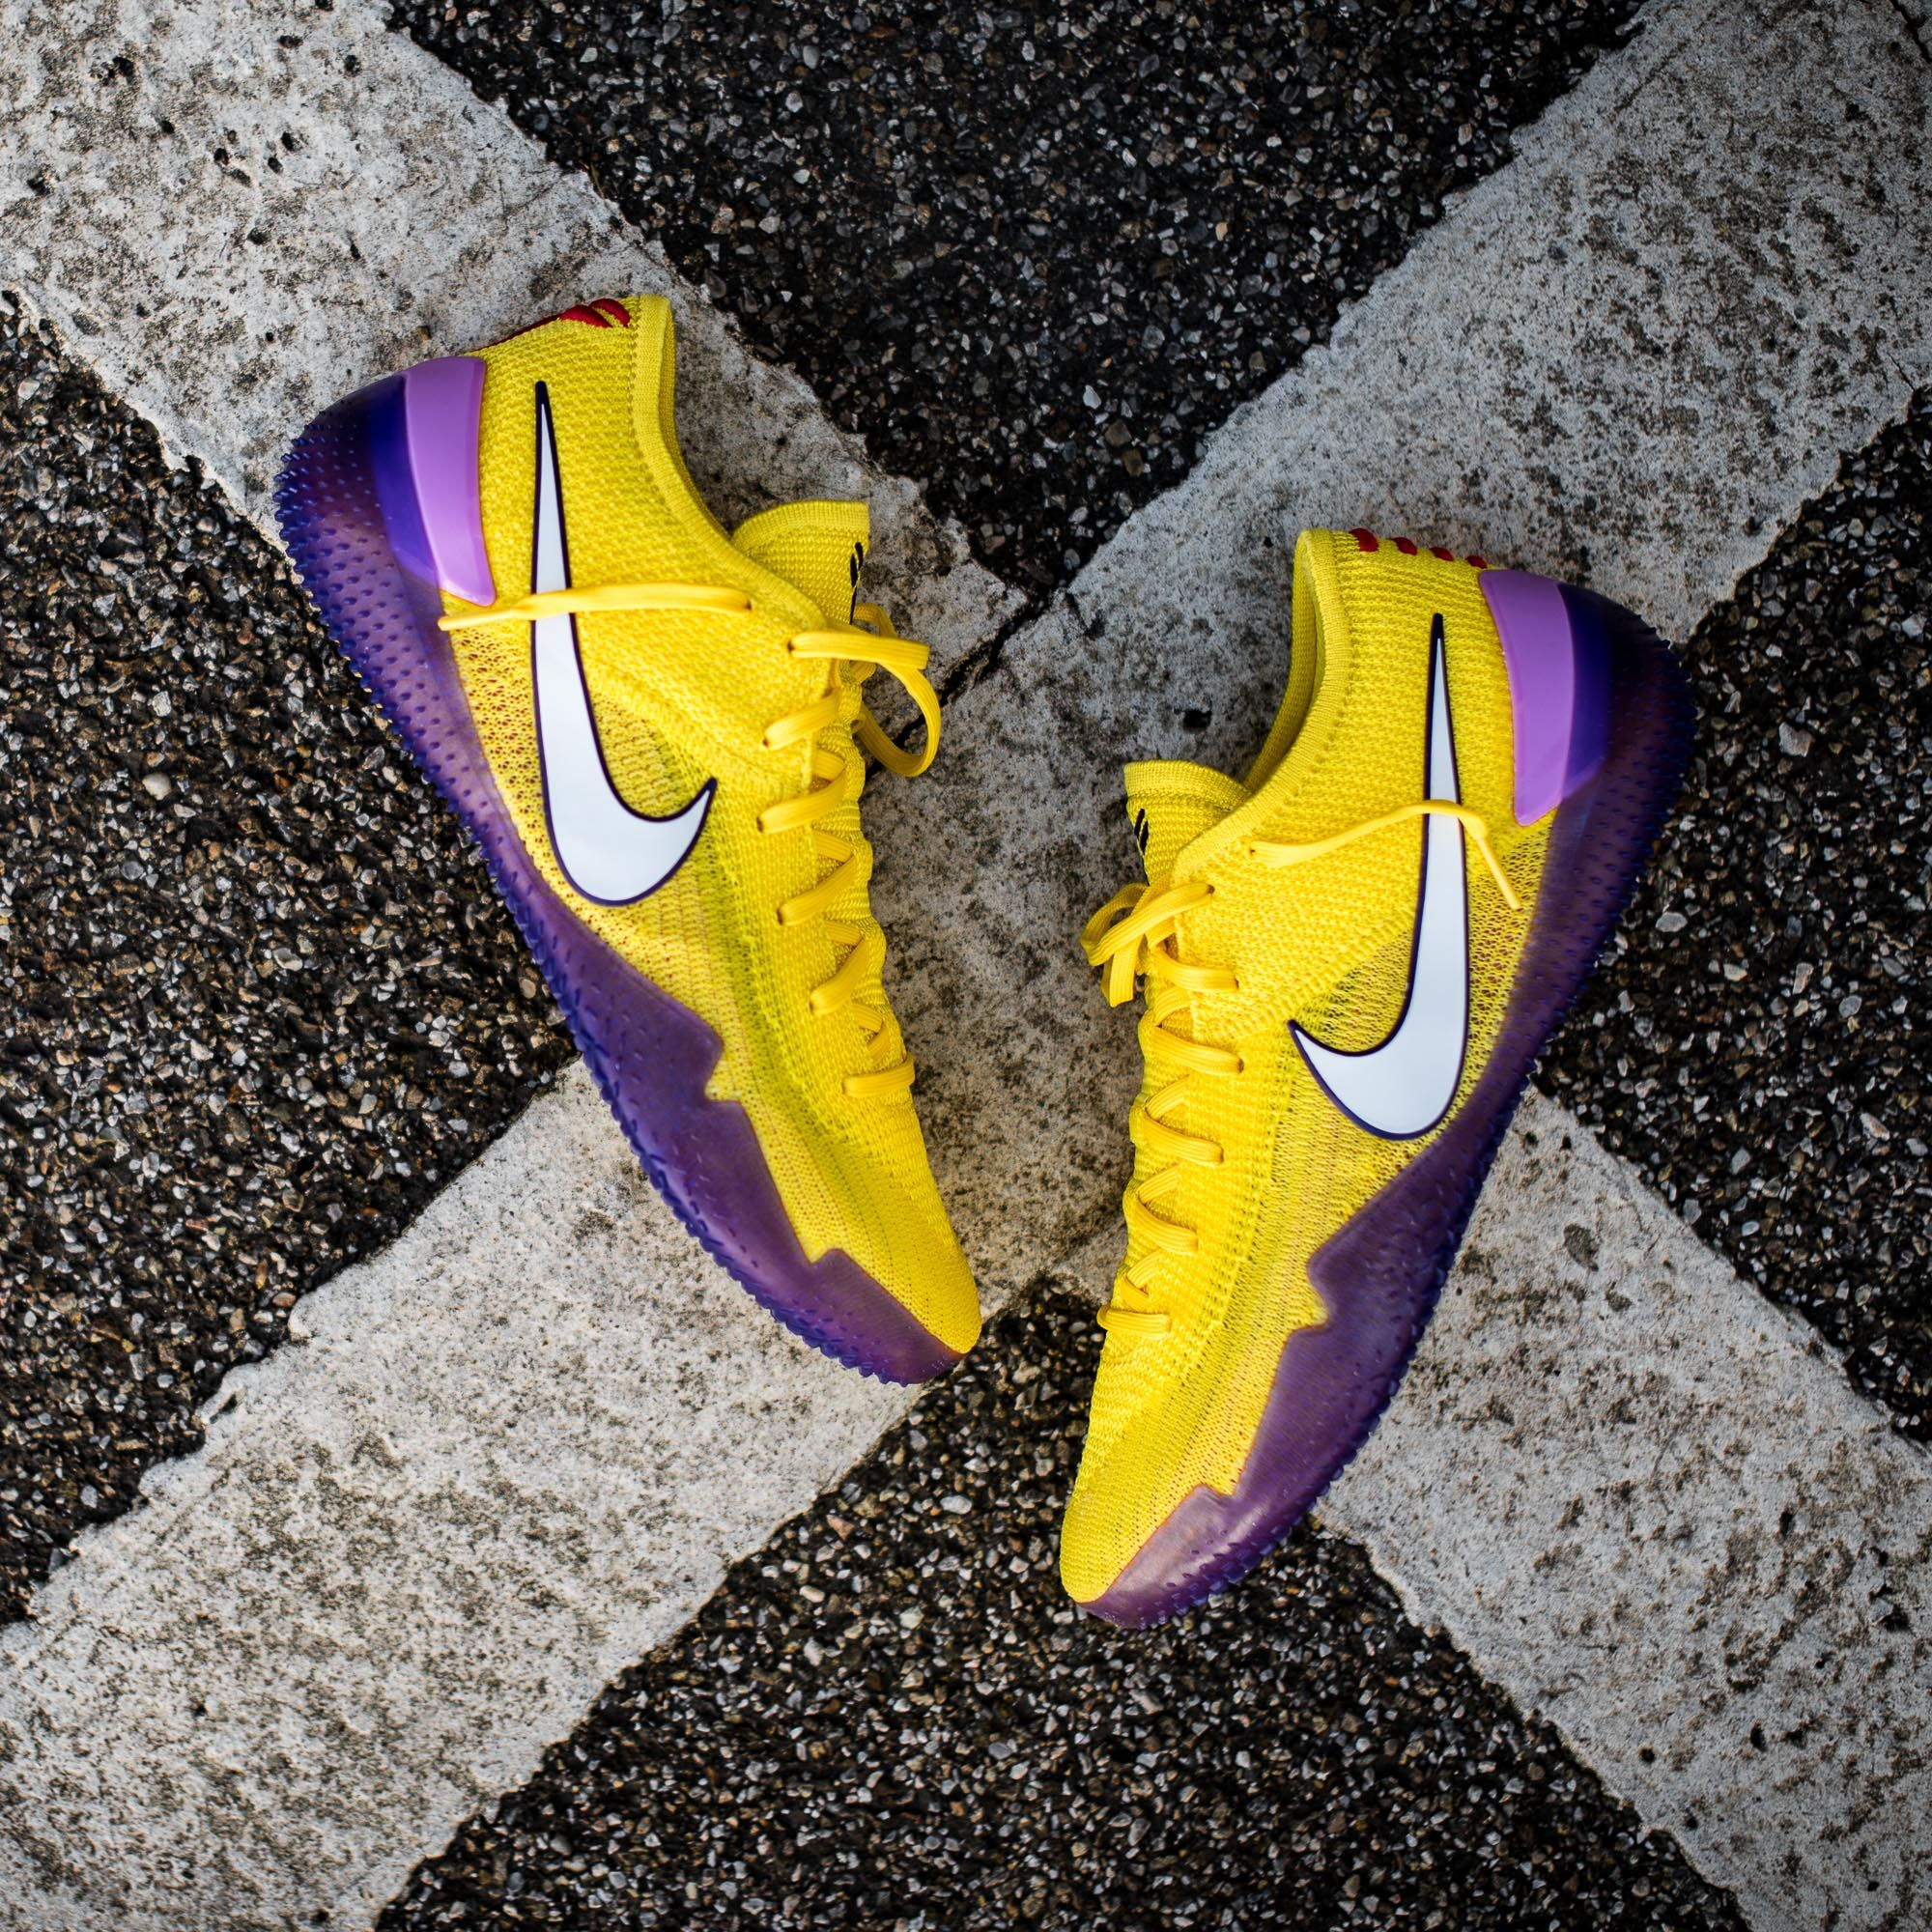 b0198bee3e6b The Kobe AD NXT 360